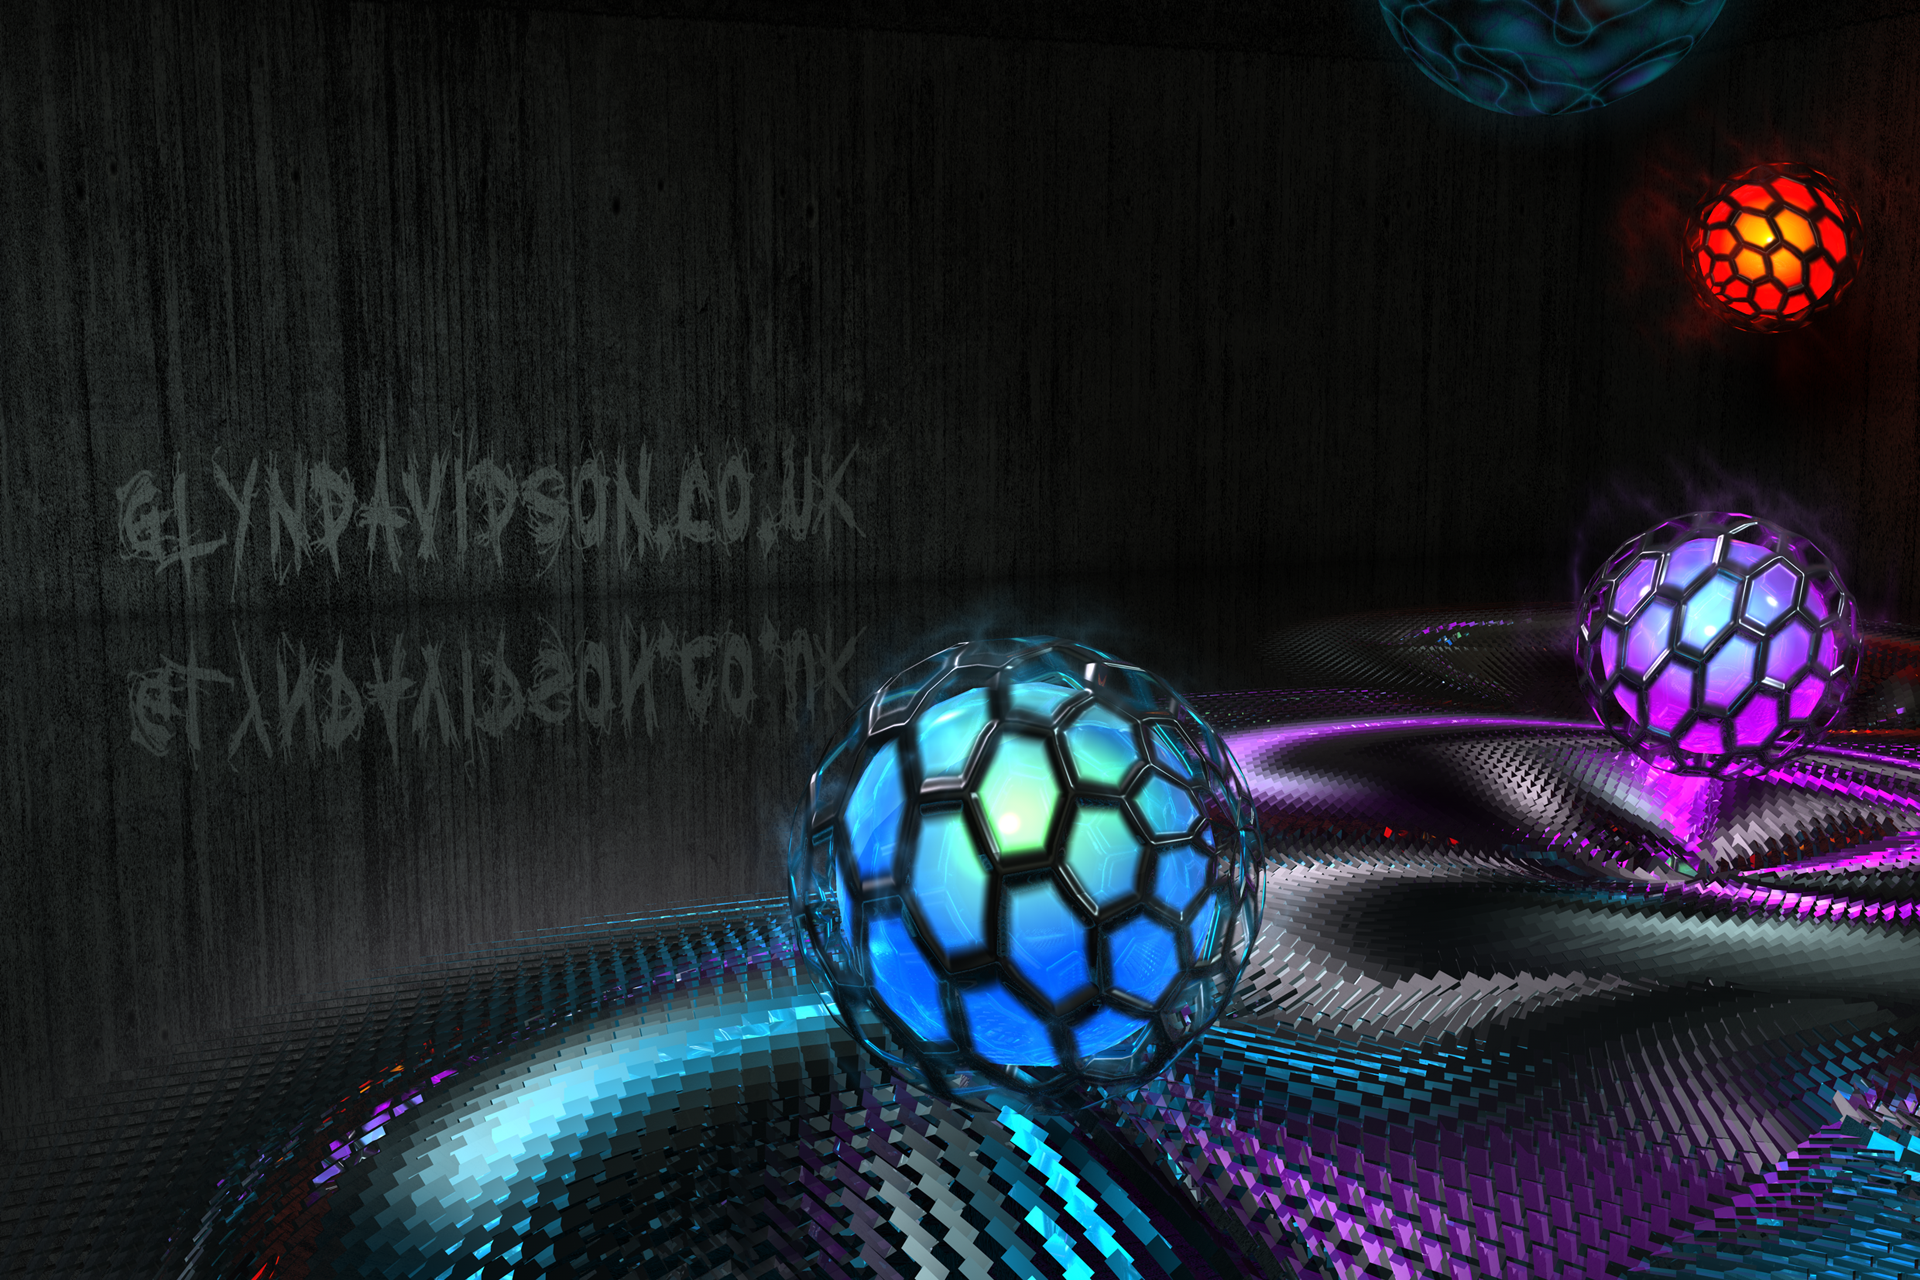 Cinema 4D Mograph wallpaper by TheRealGlyph 1920x1280